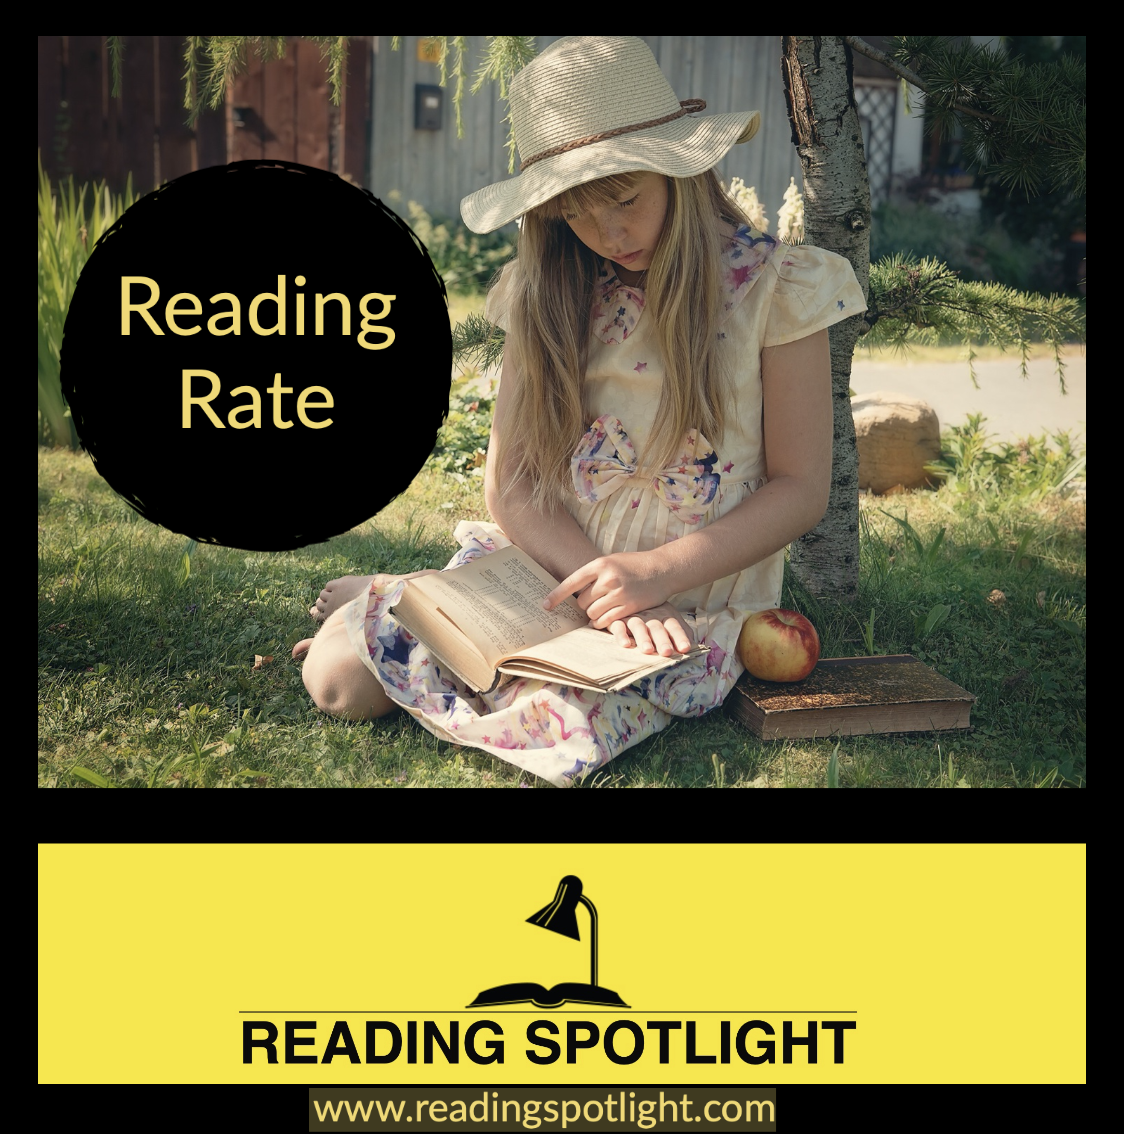 How important is Reading Rate?